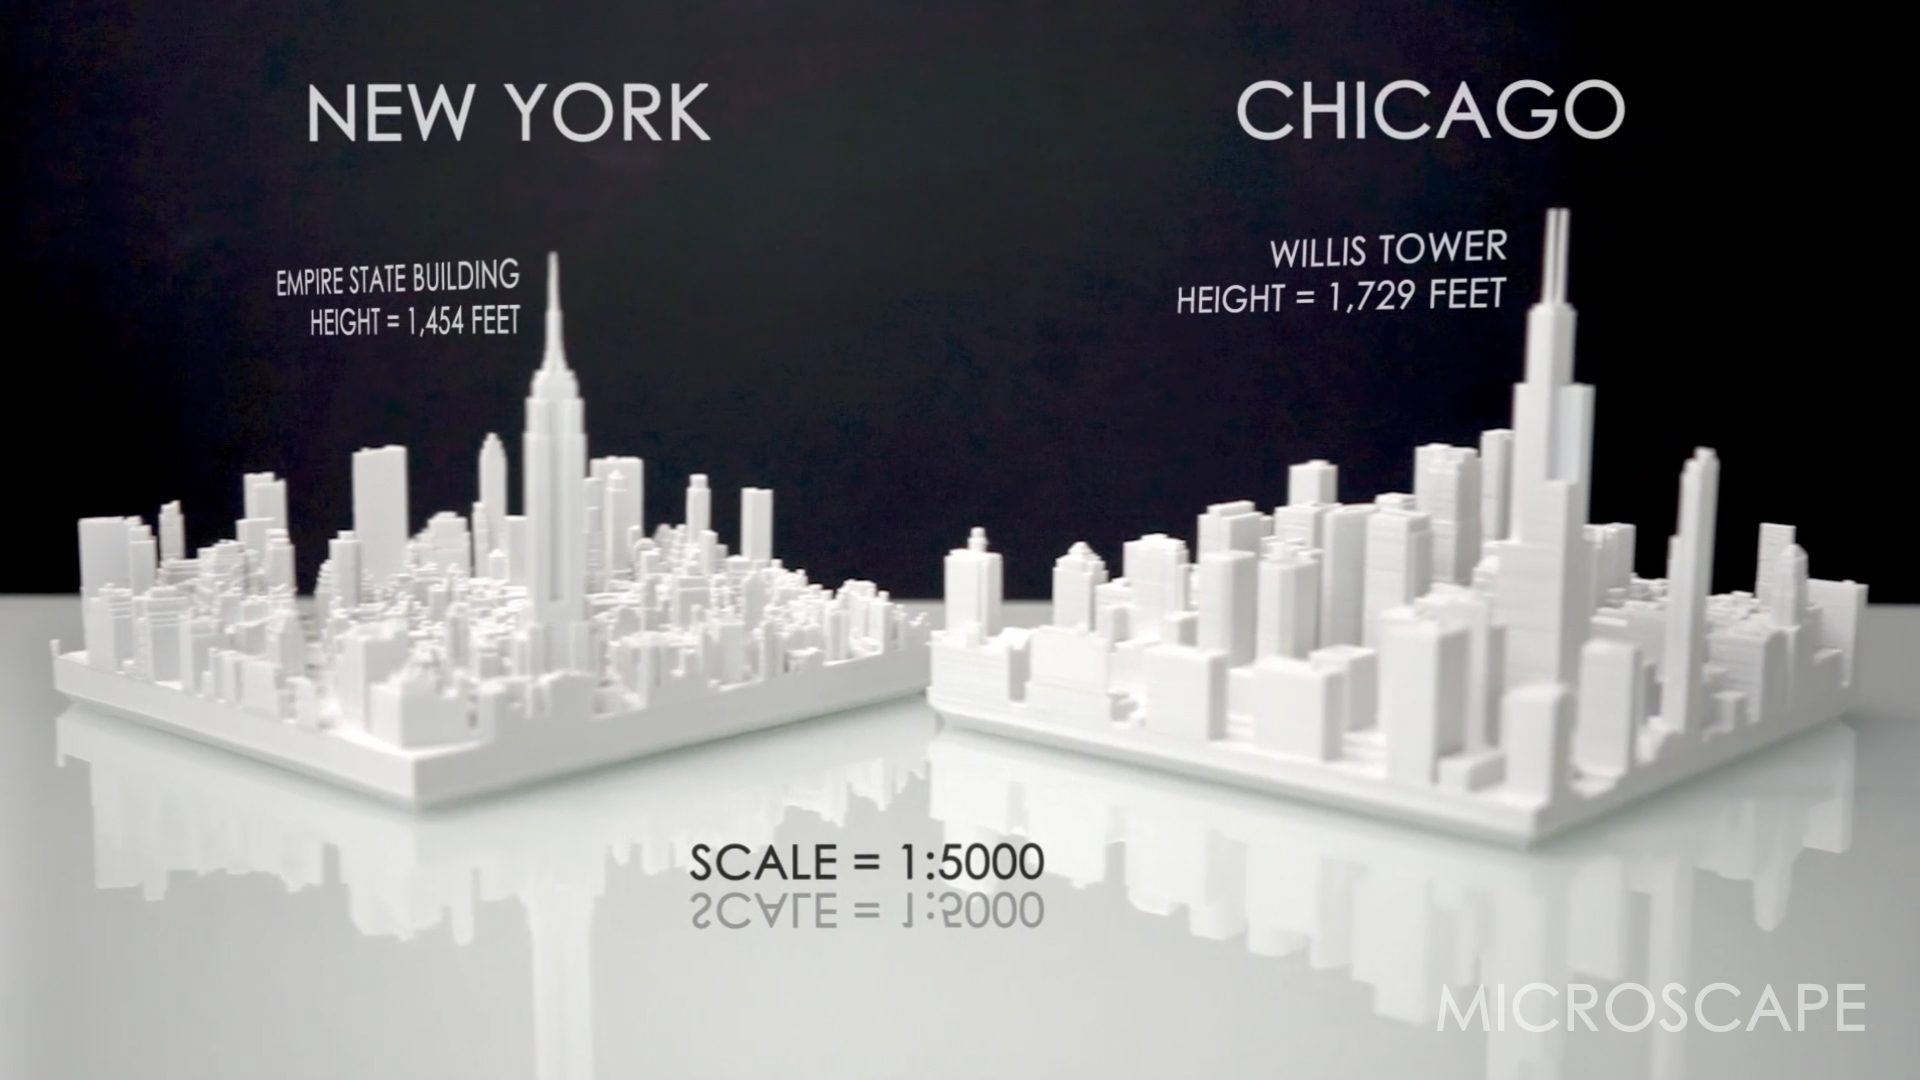 chicago vs new york size